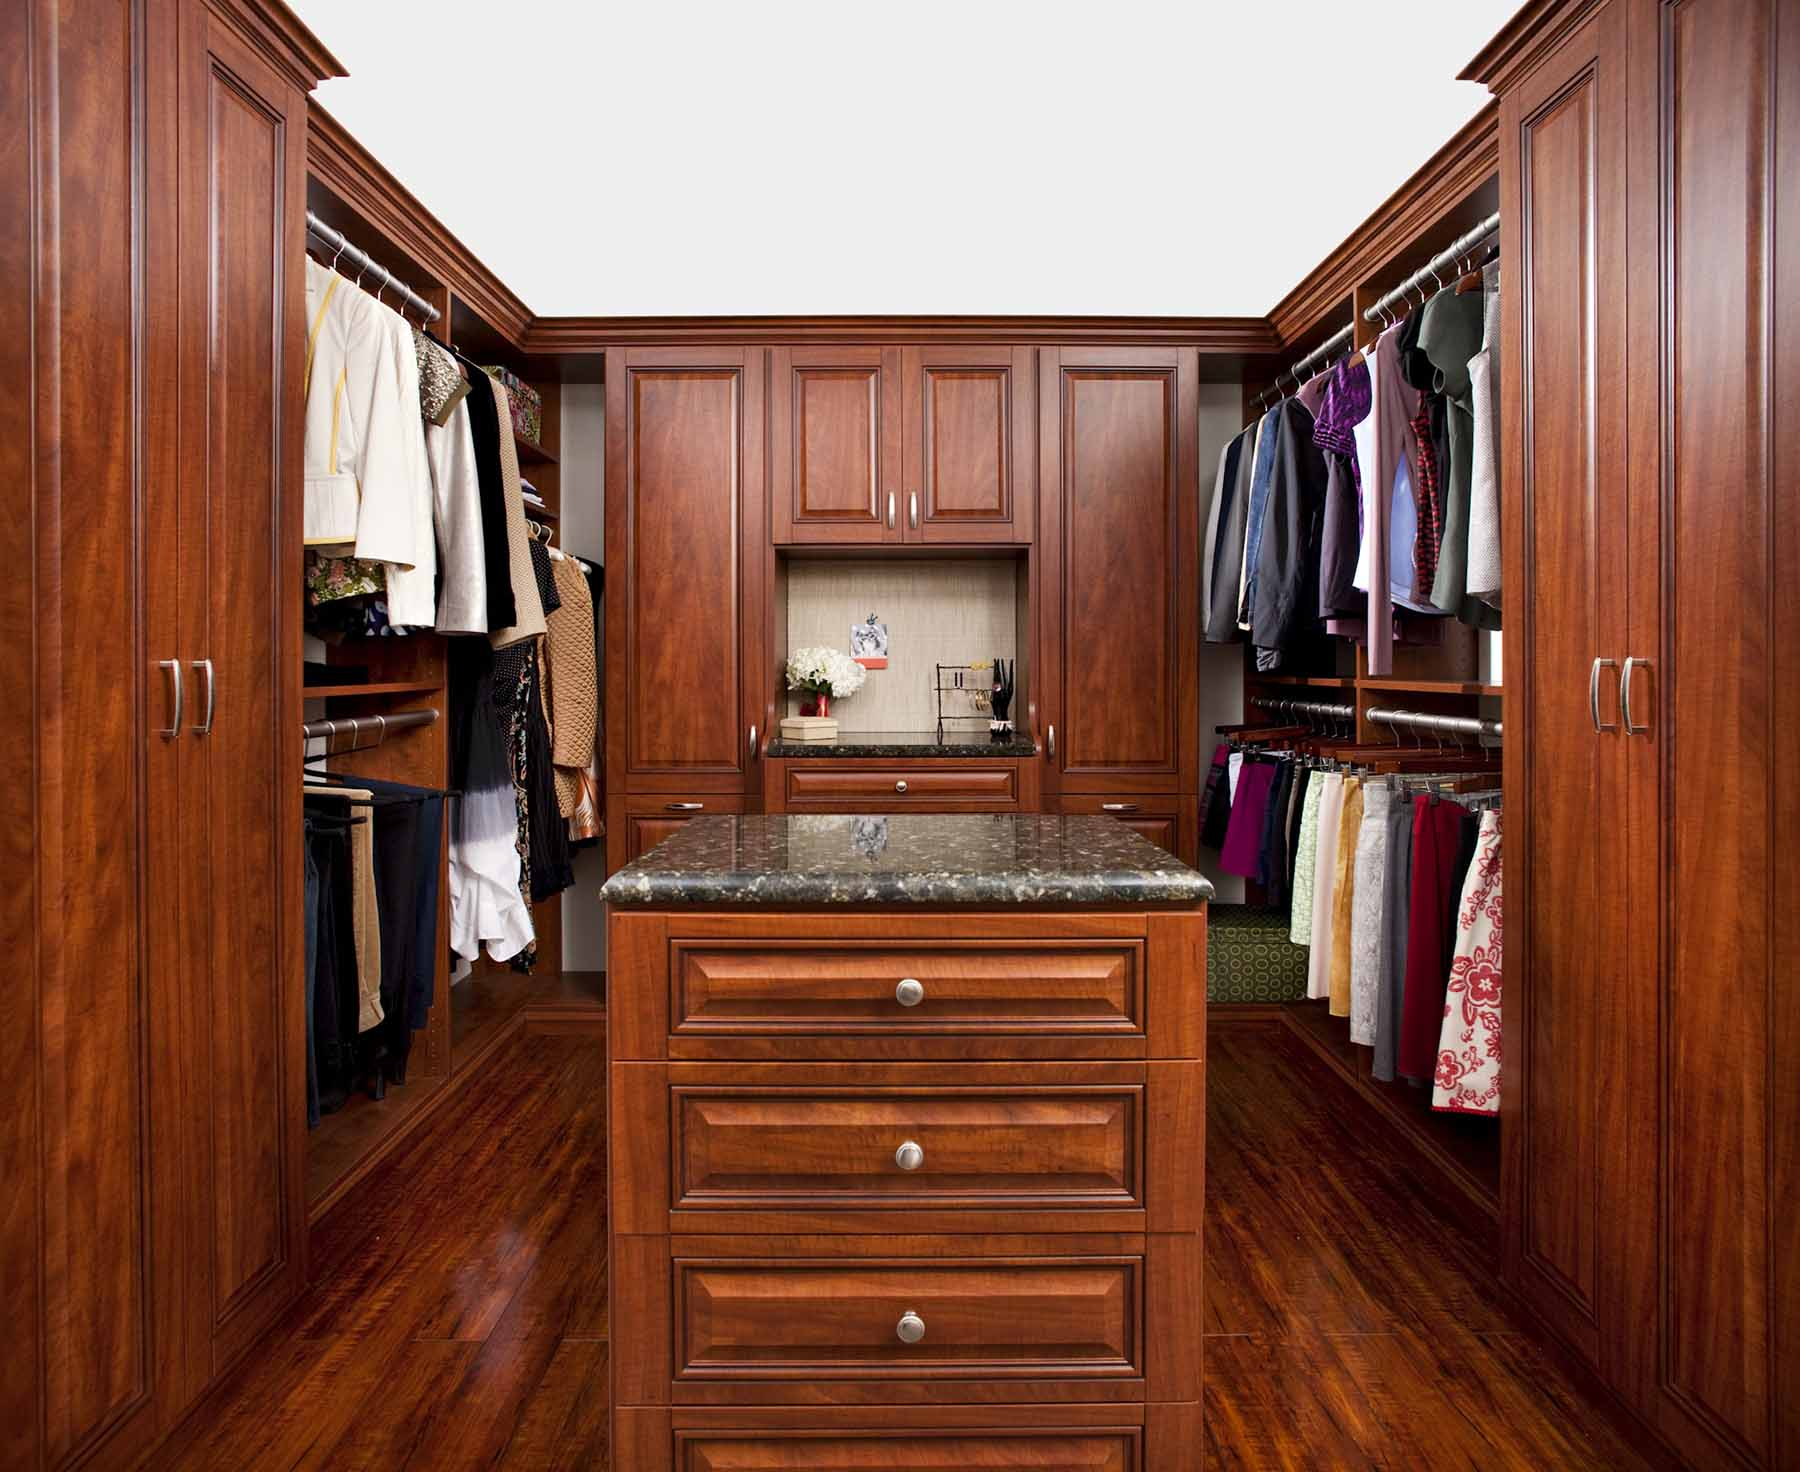 Why You Shouldn't Build Your Own Custom Closet